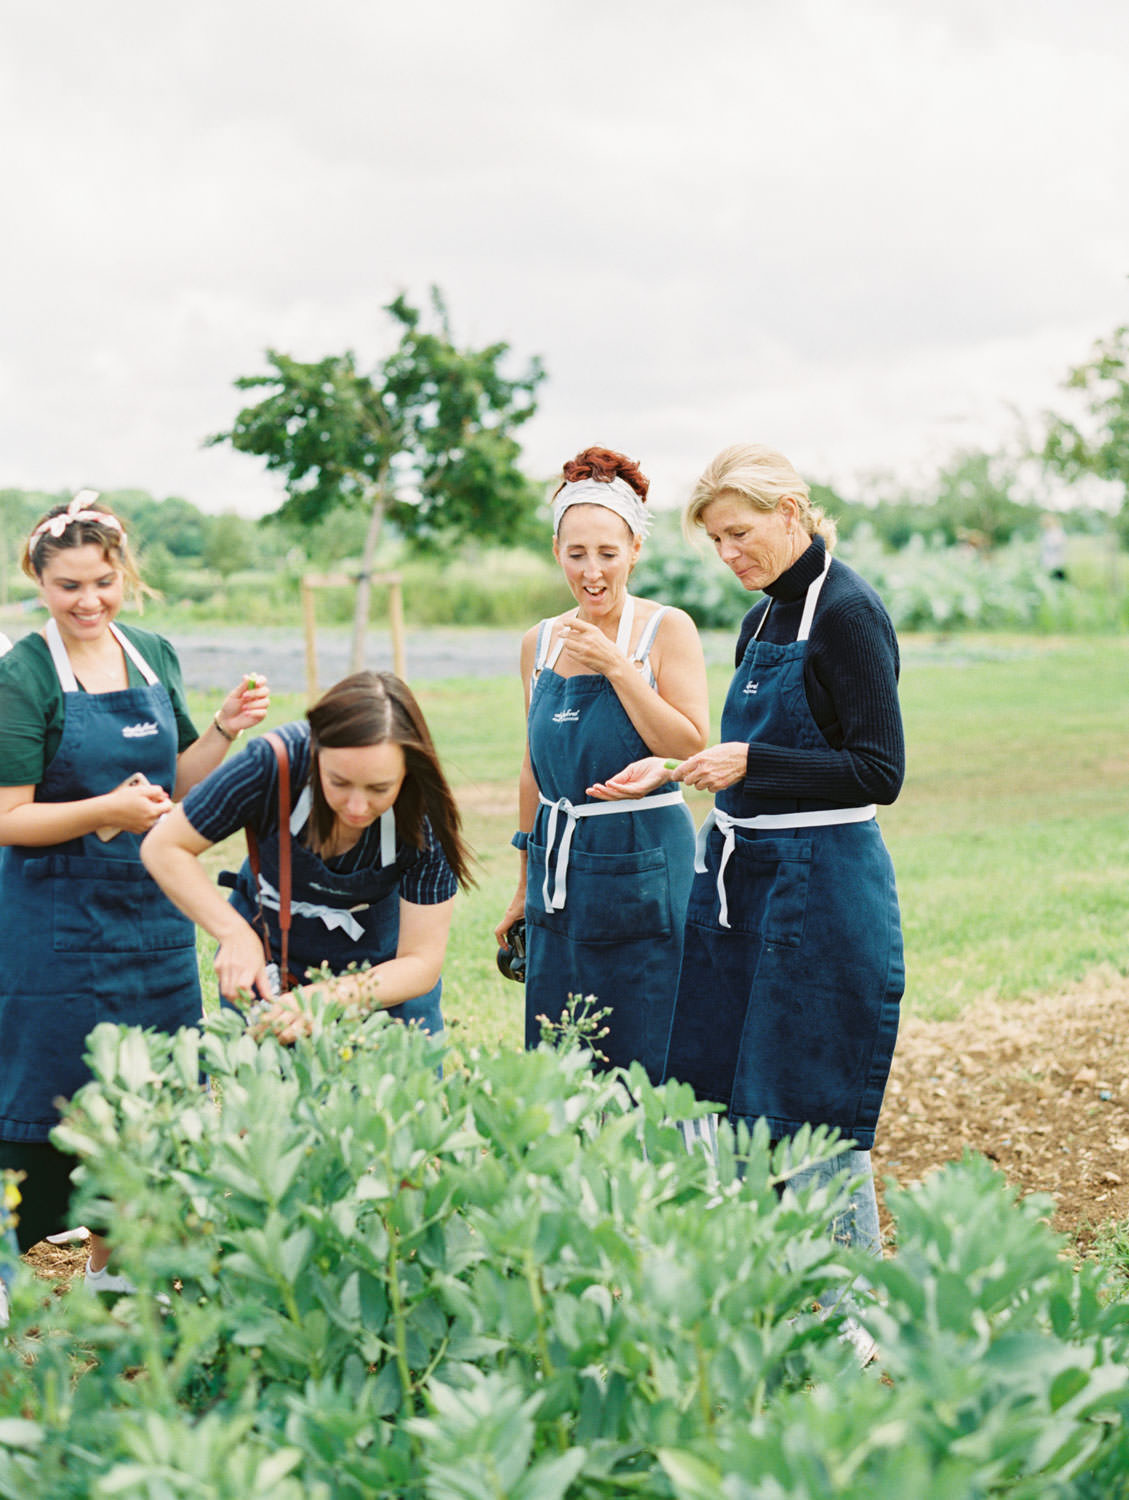 Daylesford Farm women foraging in the gardens. Flutter Magazine Retreat in the Cotswolds, England. Photo by Cavin Elizabeth Photography on film